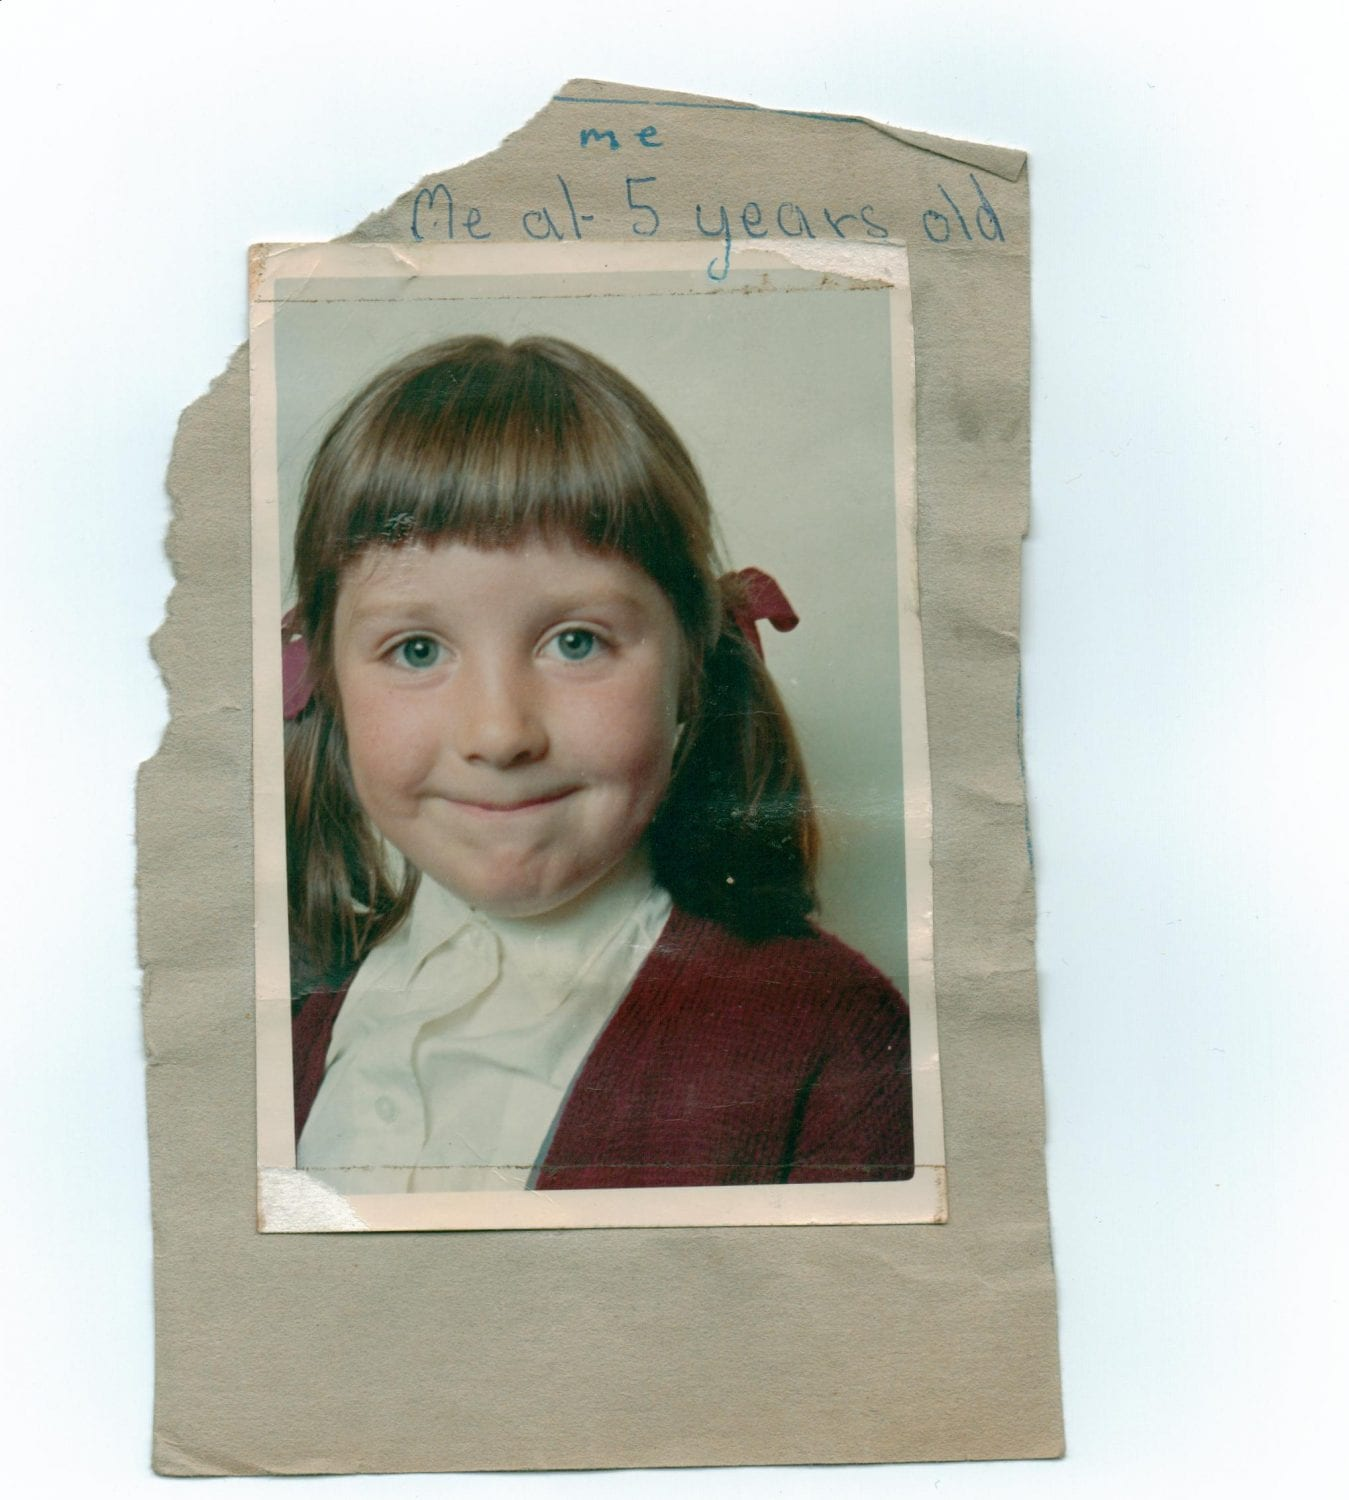 Katie Day aged 5